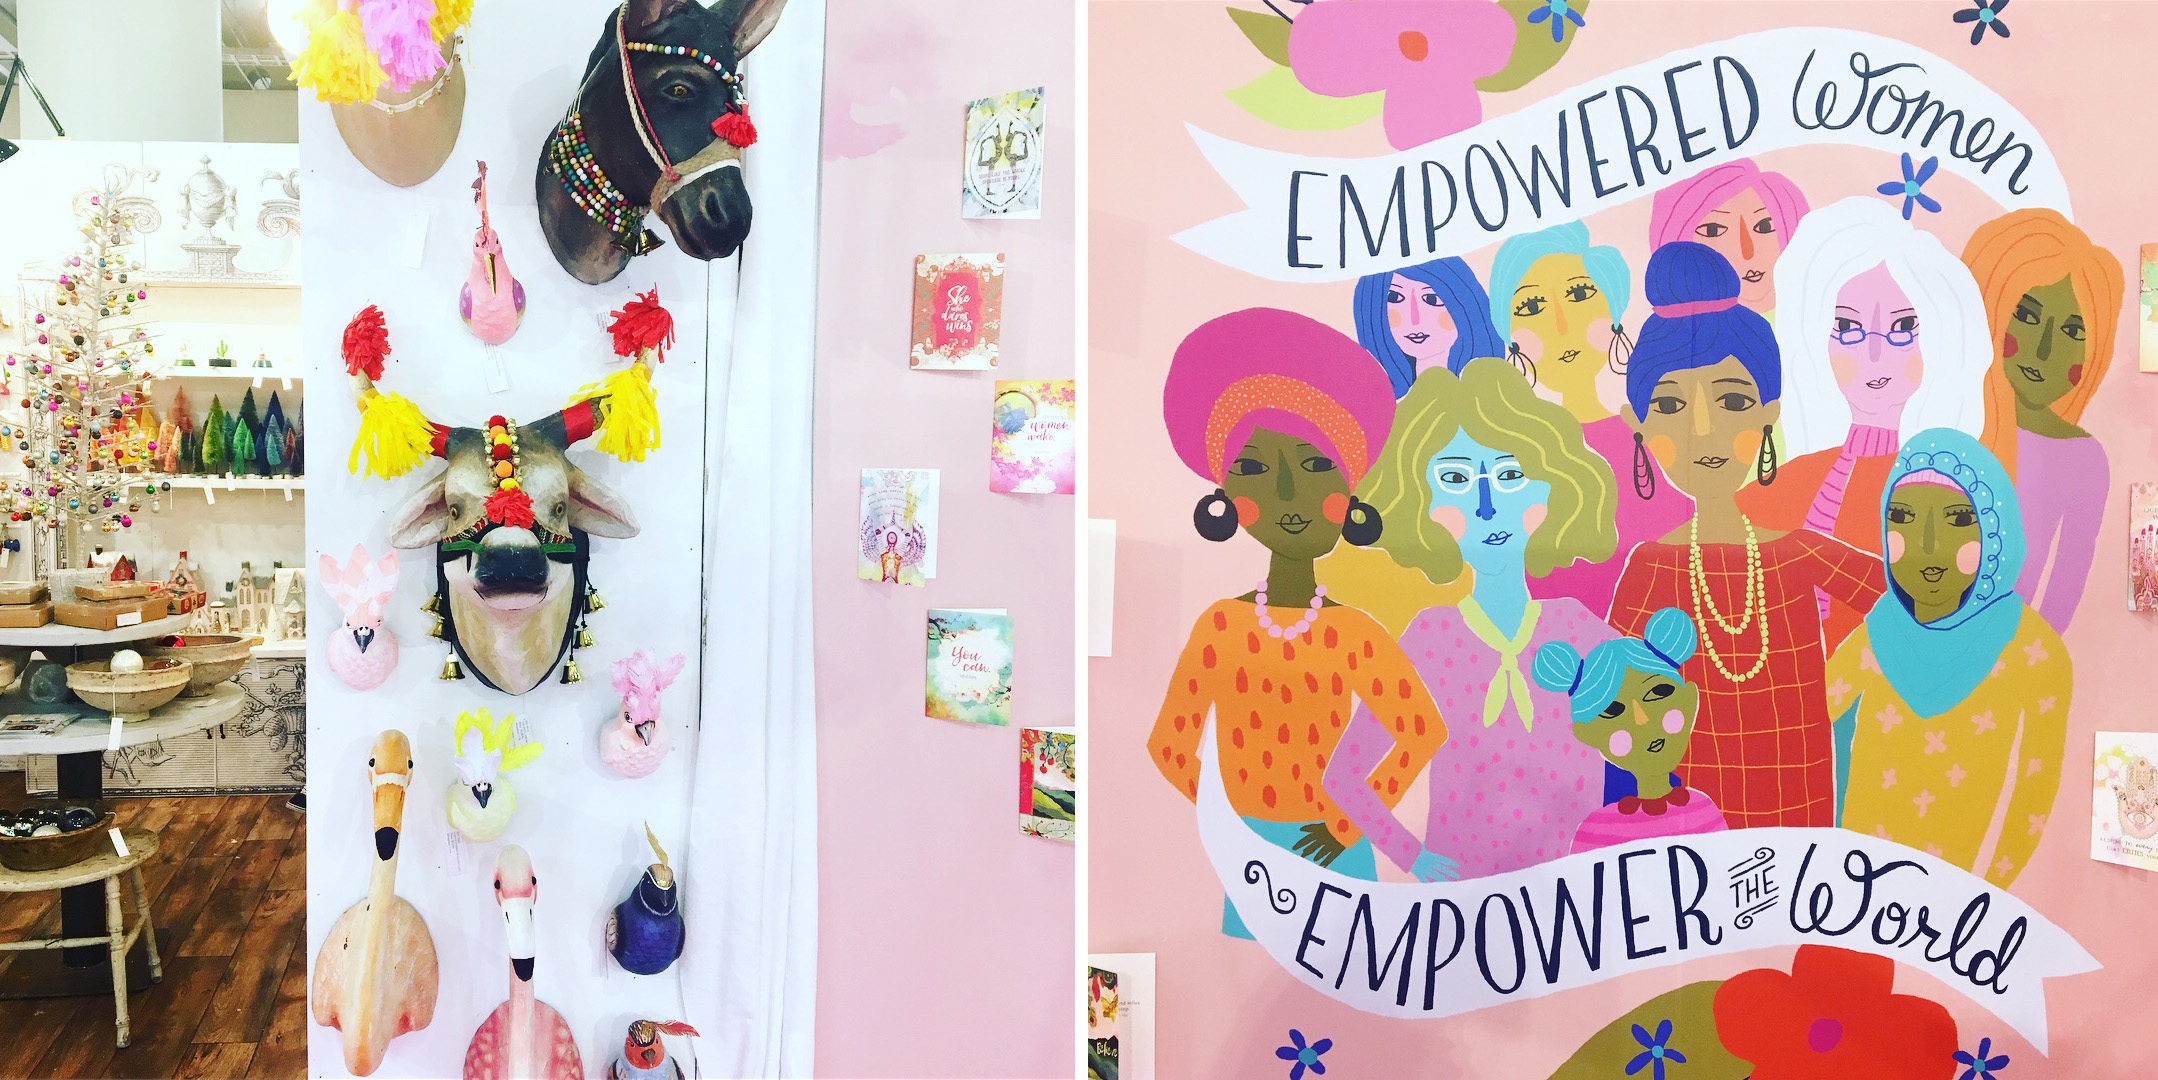 Booth decor from the small retailers  might  have given me a little home design inspo!